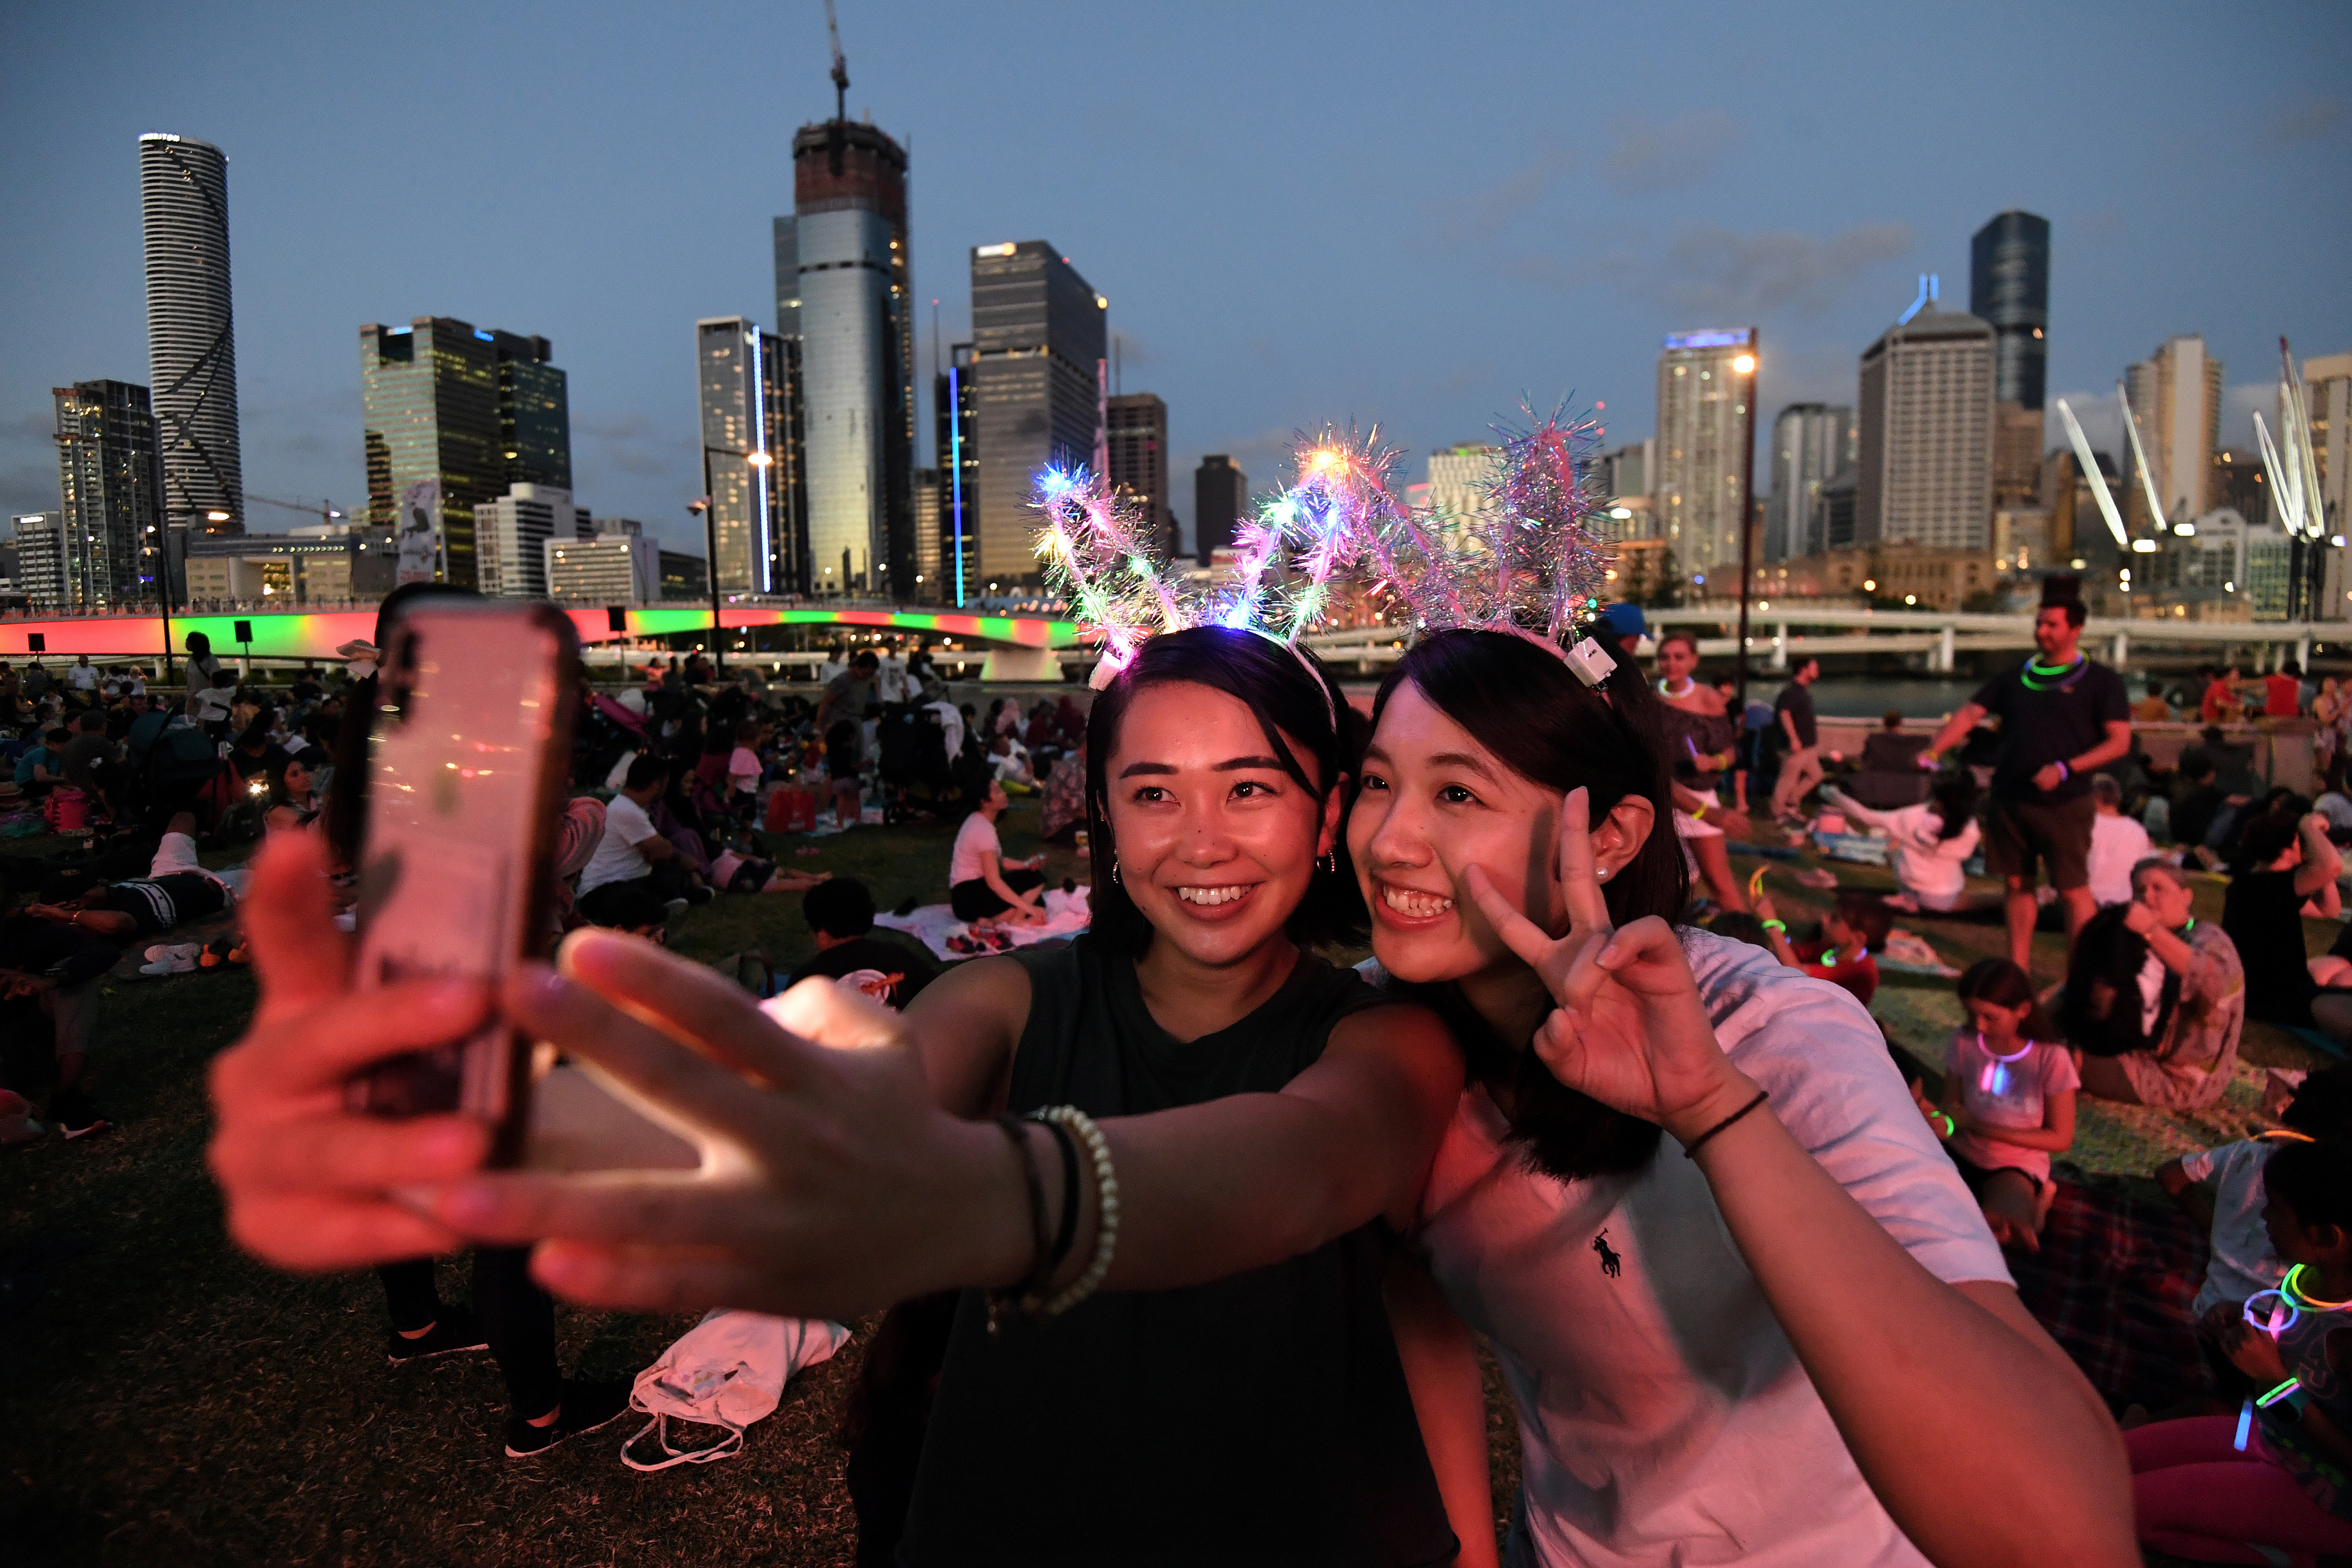 Mizuki (L) and Tsubasa take a selfie as they wait to watch the New Year's Eve fireworks at South Bank in Brisbane, Australia, December 31, 2019. Photo: Reuters